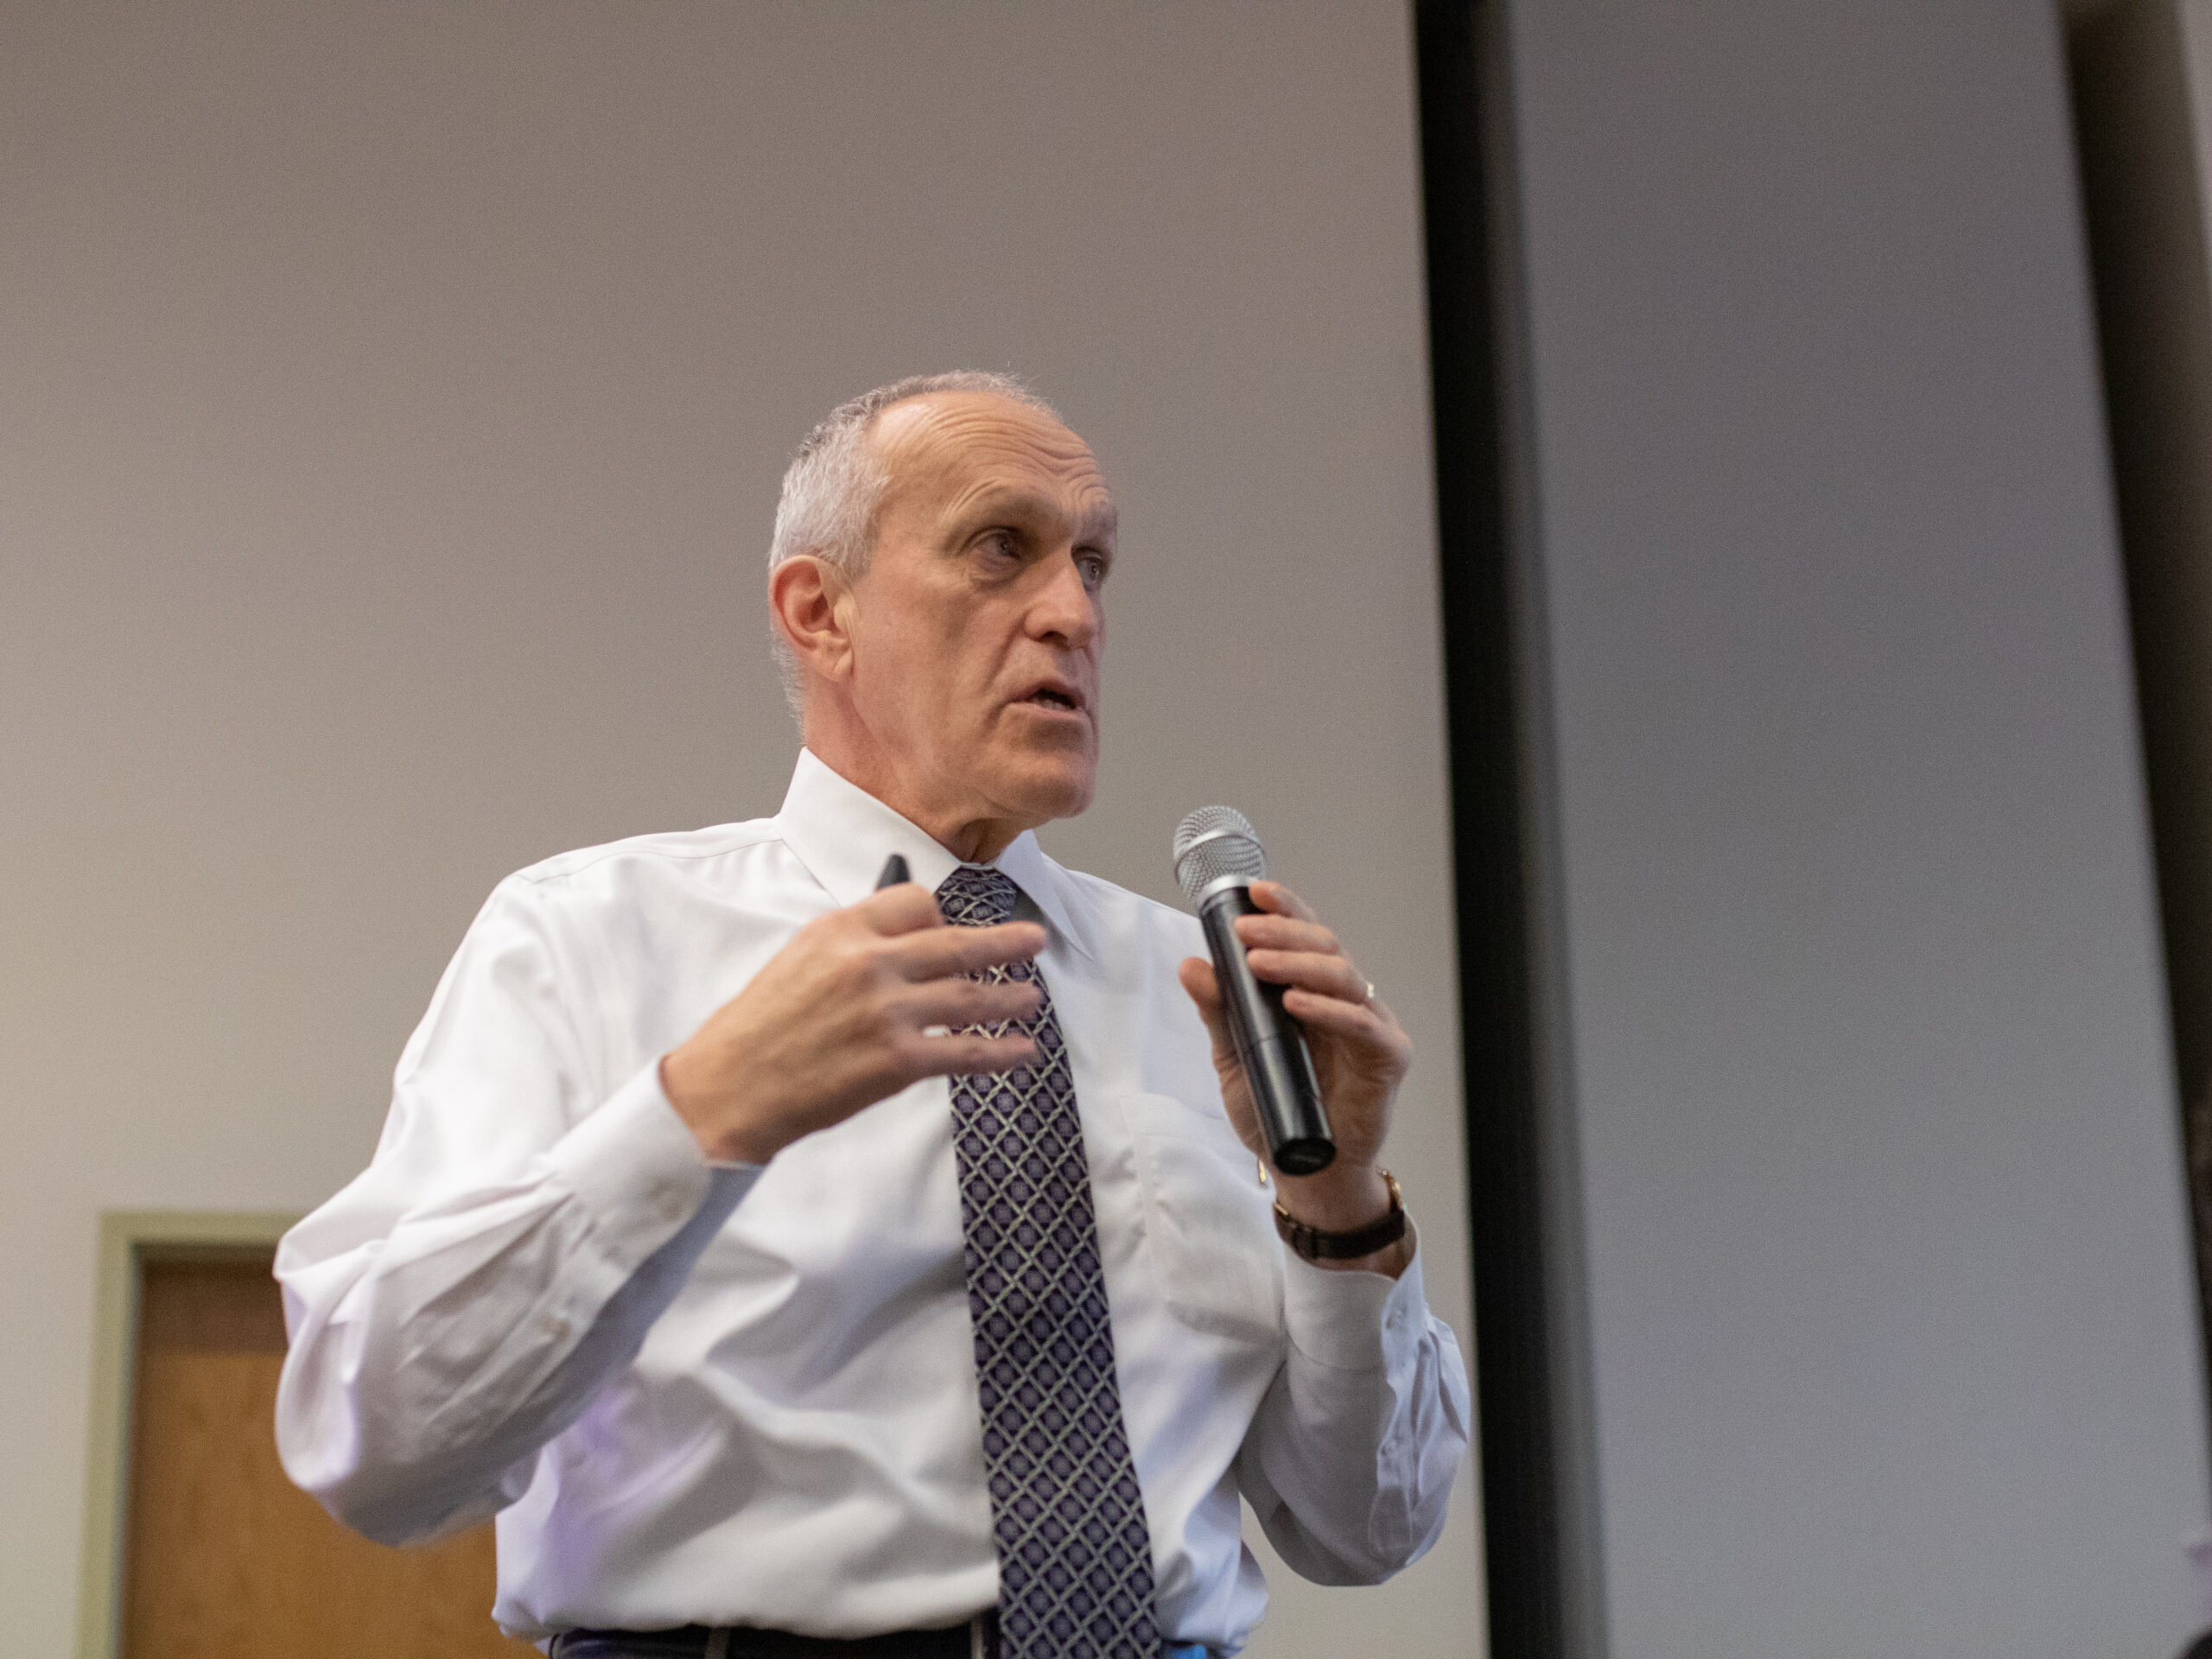 www.highlandernews.org: UCR's Chancellor Wilcox condemns violent and racist attacks nationally against Asians, Asian Americans and Pacific Islanders